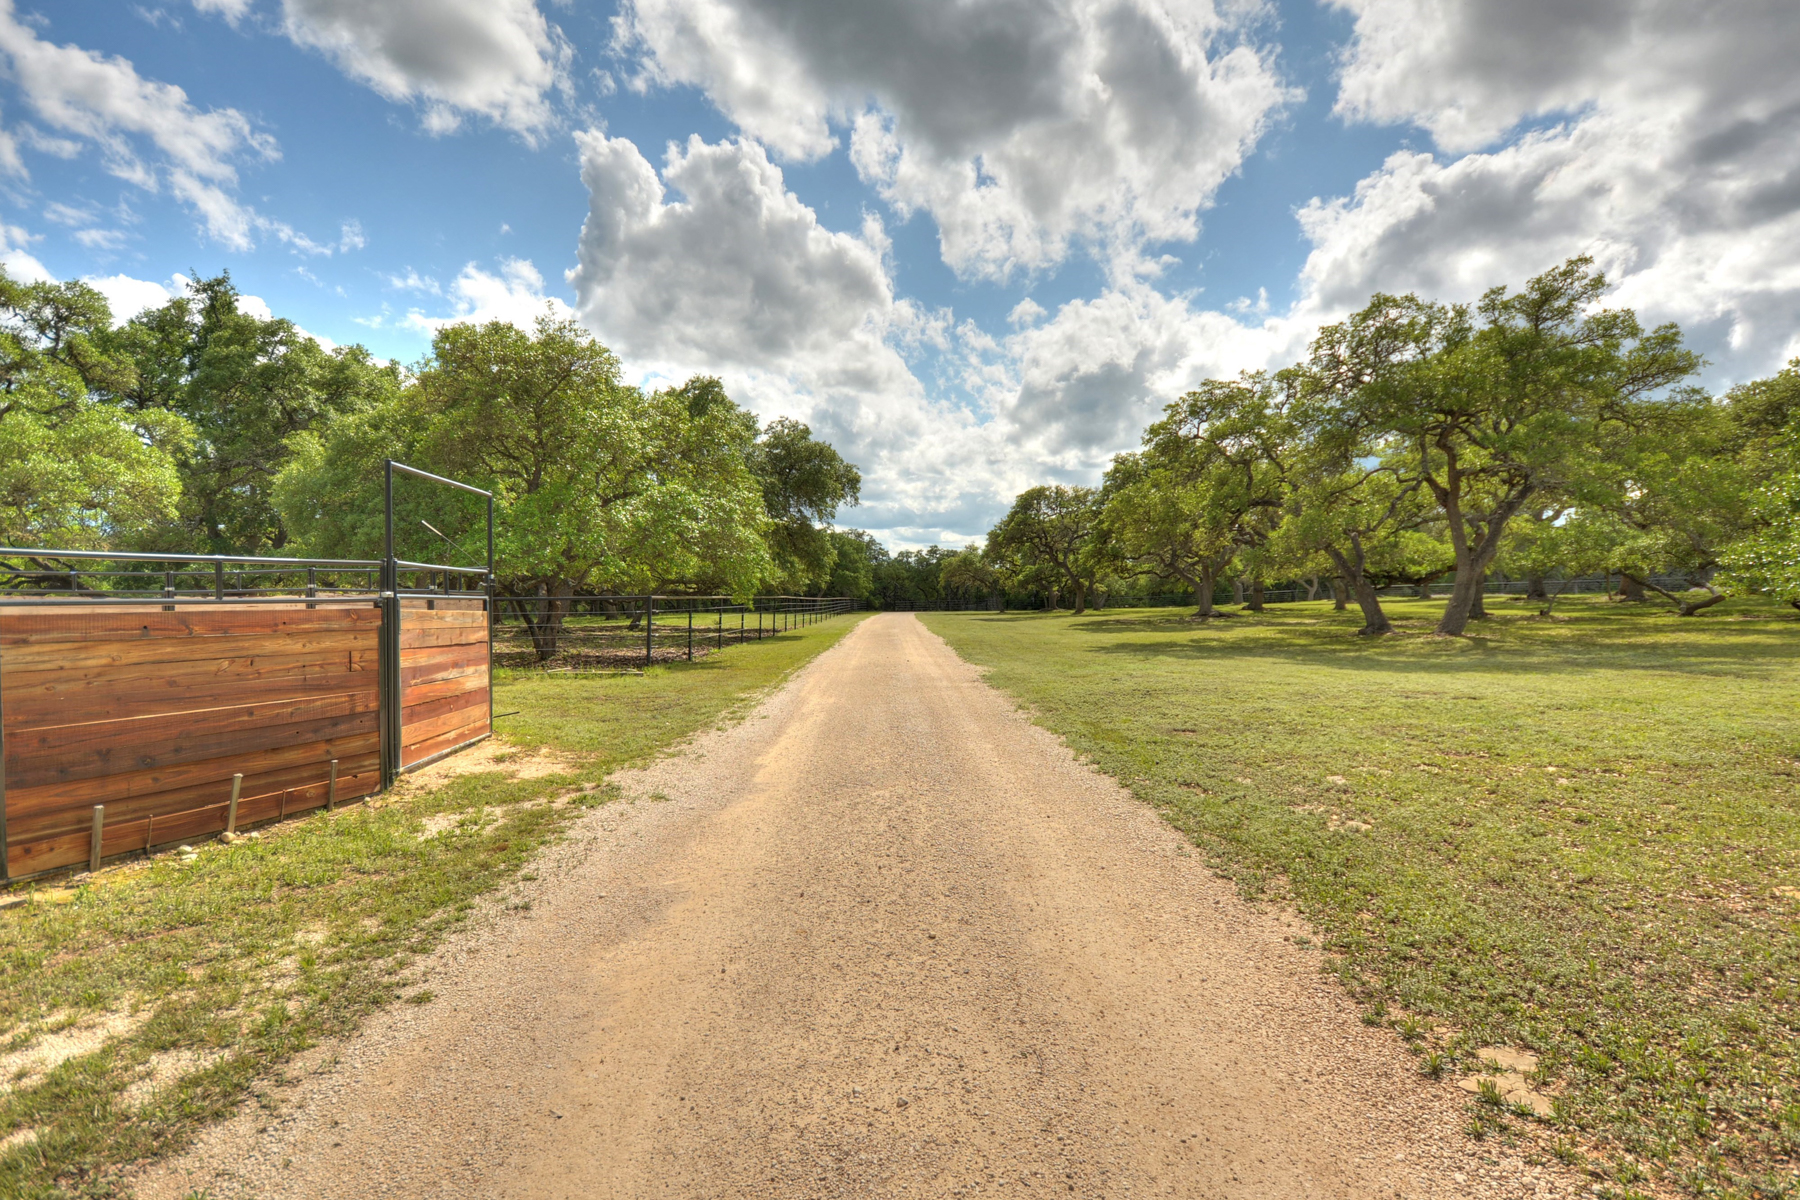 Additional photo for property listing at 15.84+/- Ac Premium Horse Property 47 Pfeiffer Rd Boerne, Texas 78006 Estados Unidos